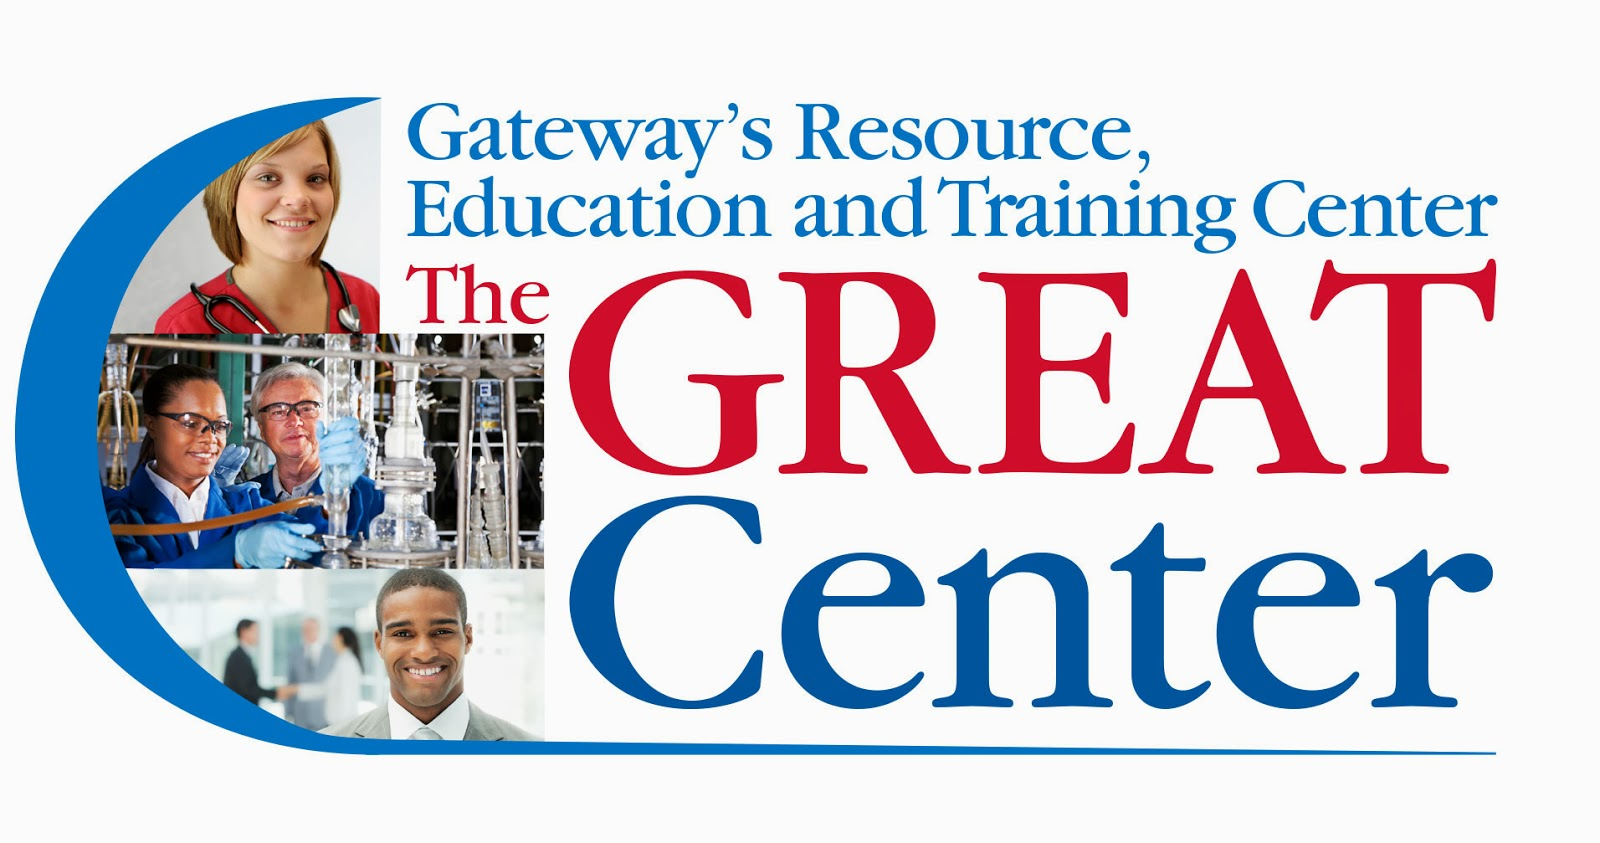 http://www.gatewayct.edu/Great-Center